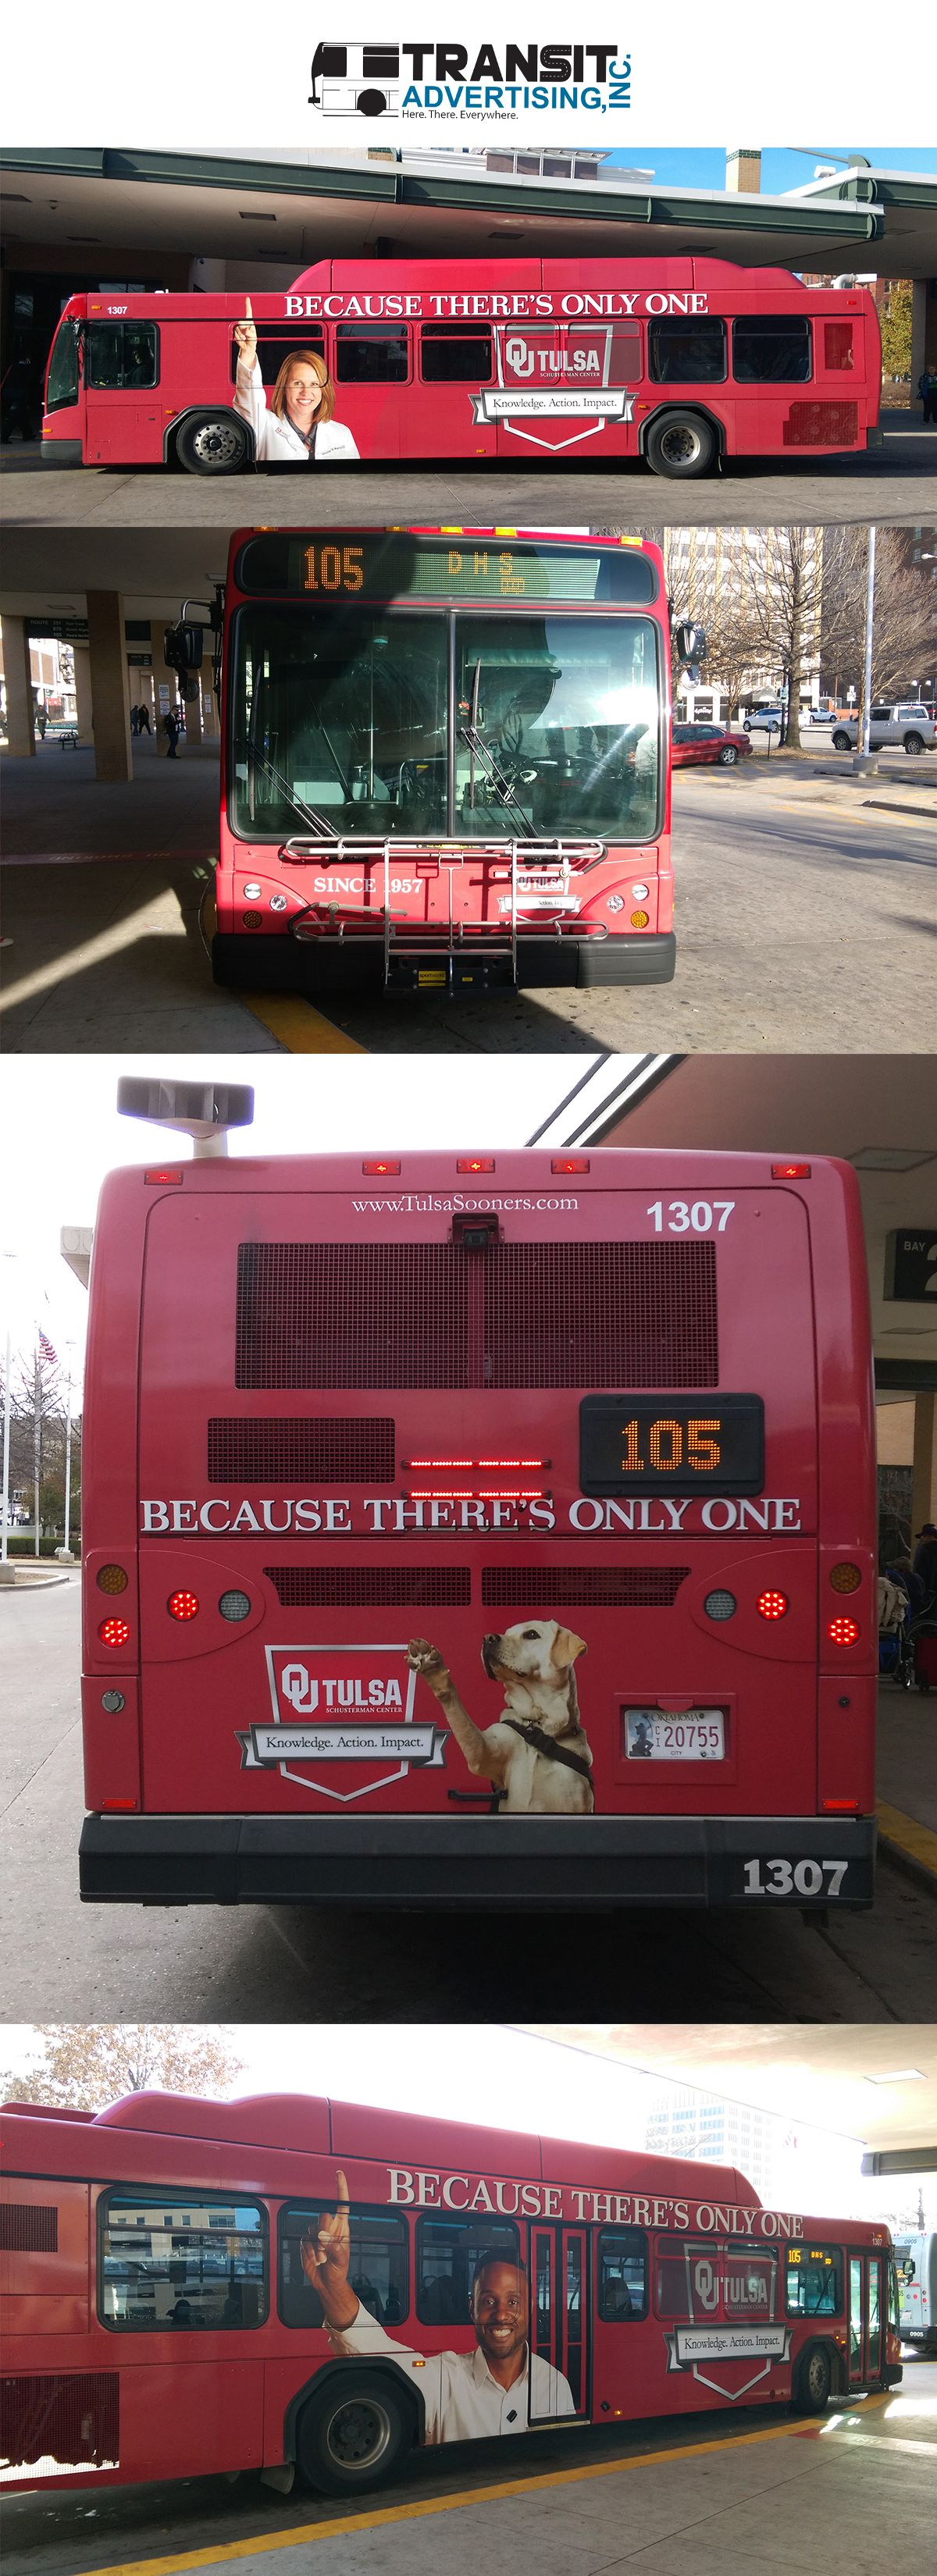 Advertising On Transit Buses Increases Impressions By Taking Your - Lightning mcqueen custom vinyl decals for cardisney pixar cars a walk down cars advertising memory lane take